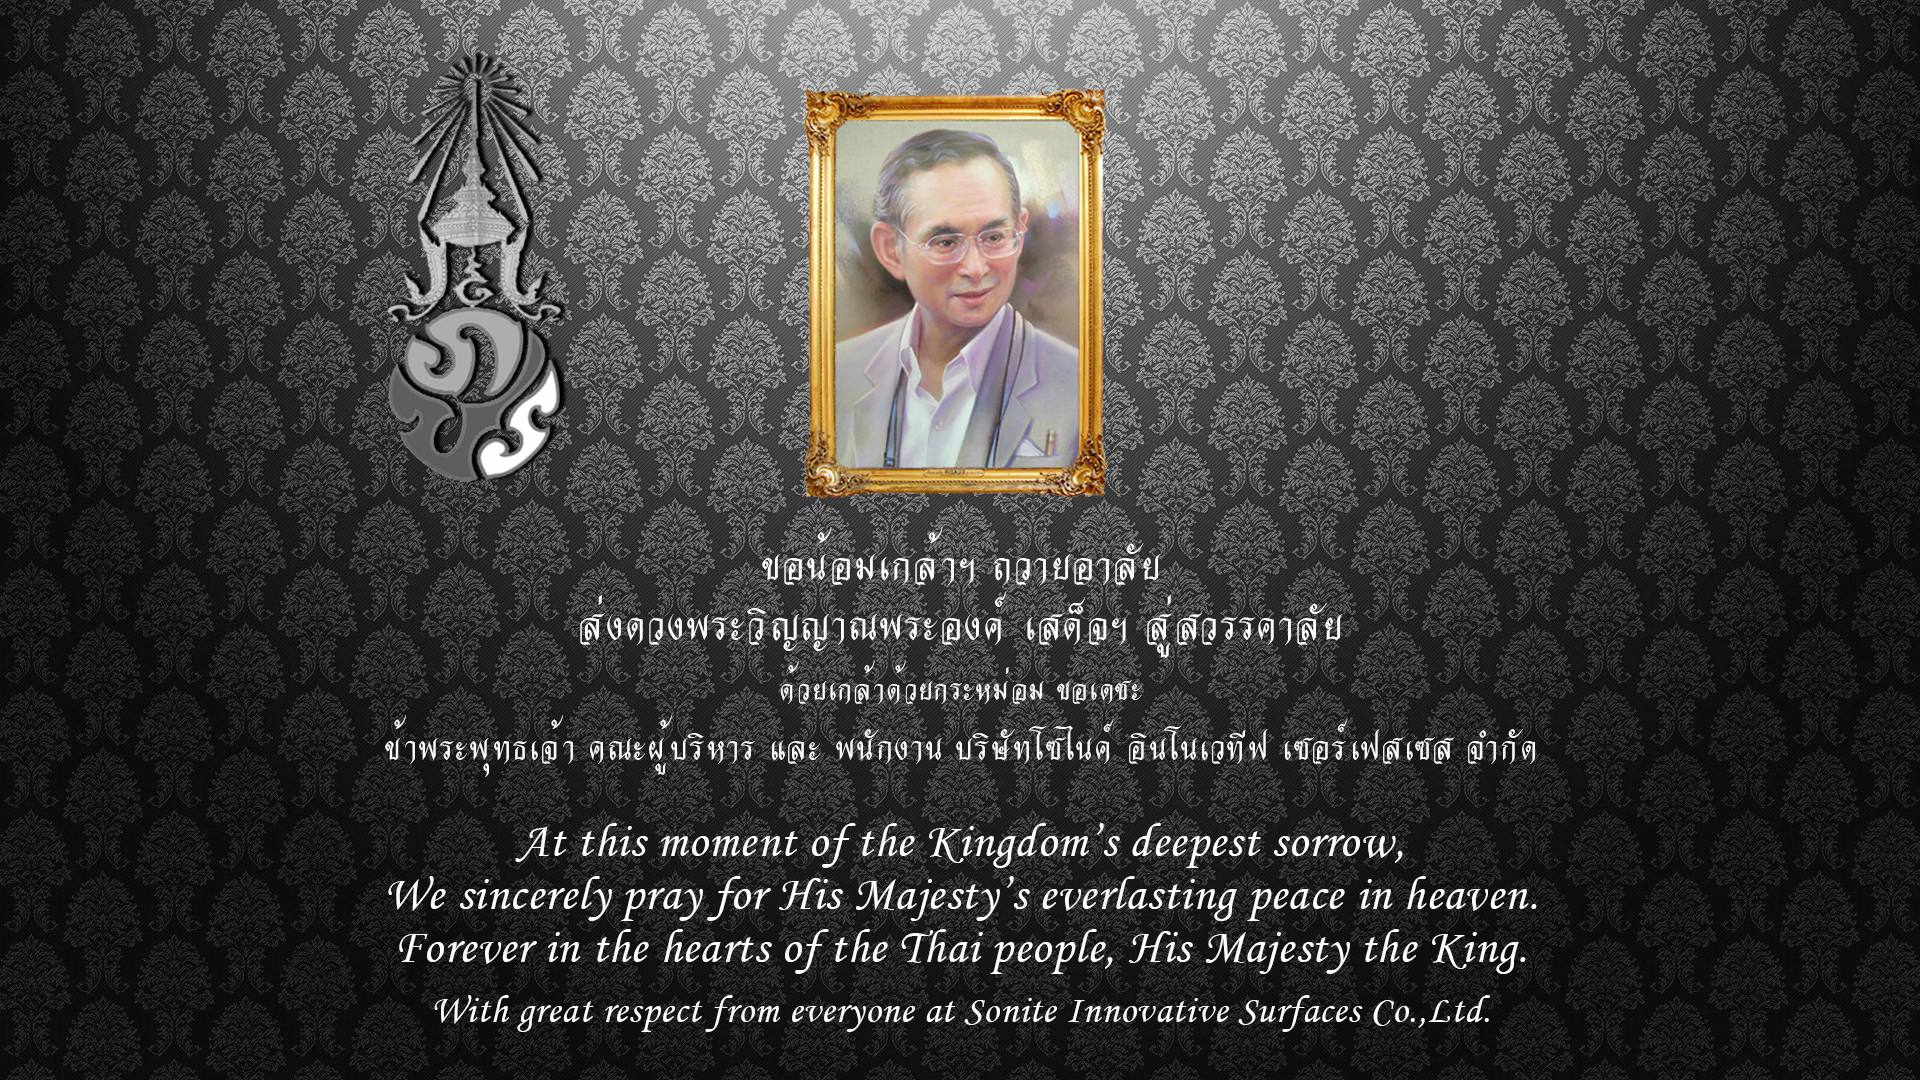 king-of-thailand-001-4